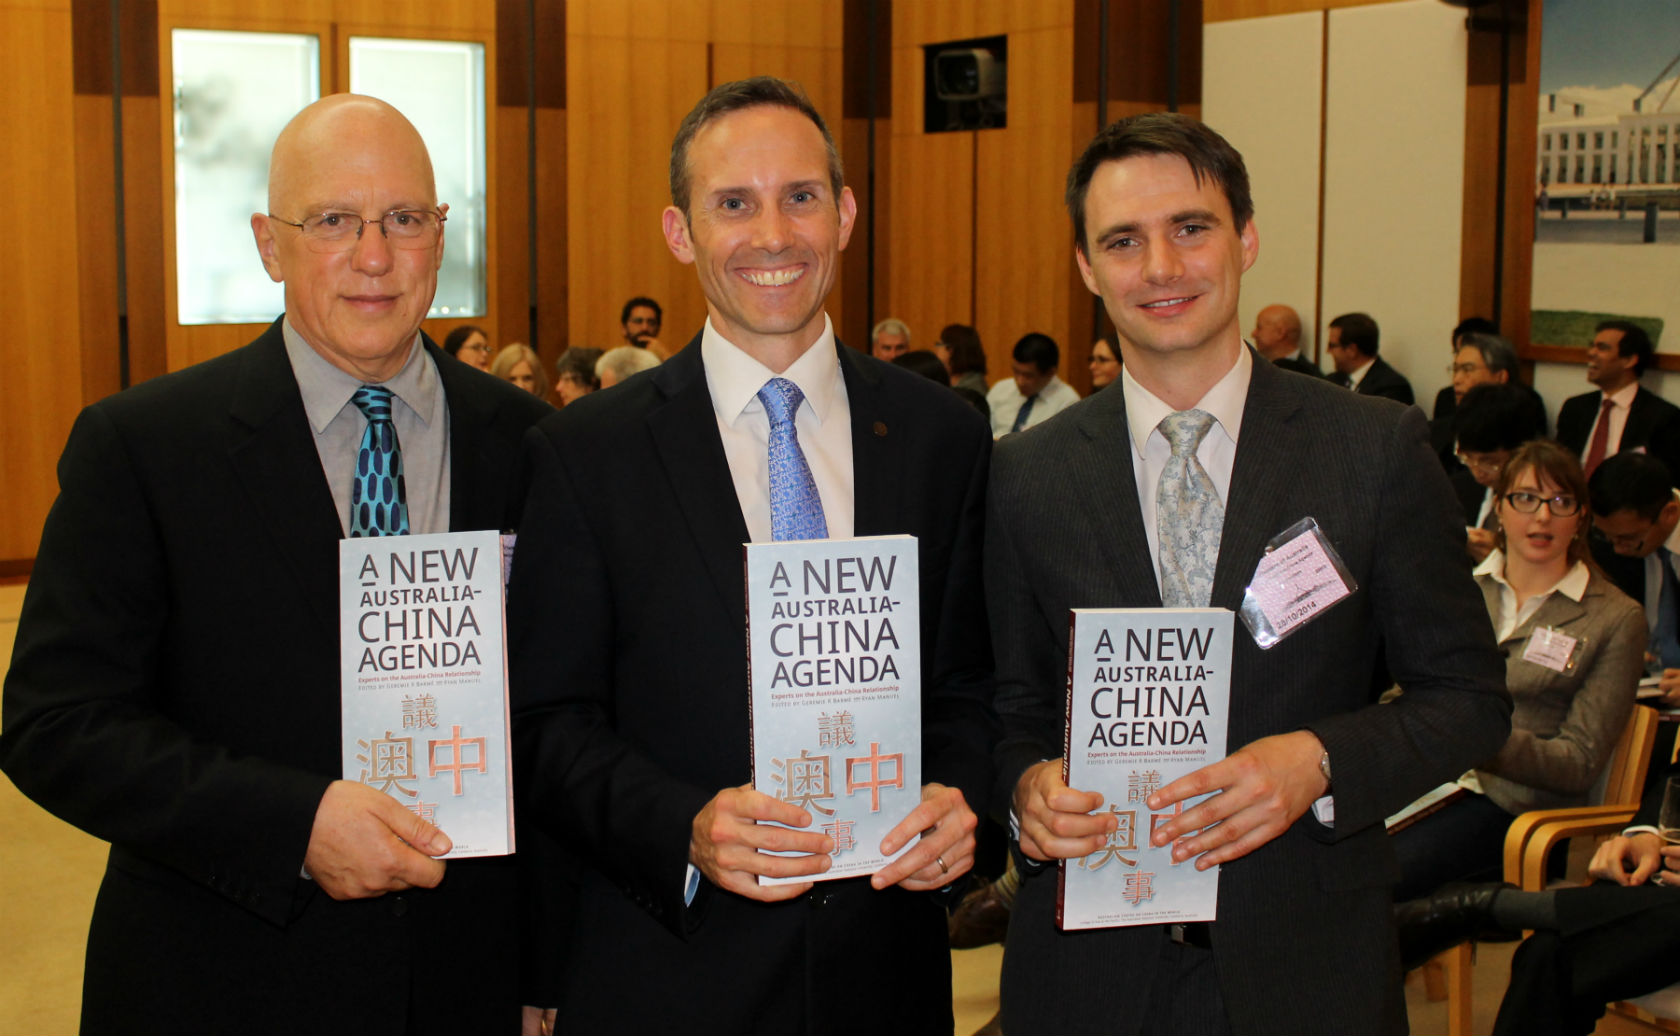 With_editors_Geremie_Barme__and_Ryan_Manuel__at_the_launch_of_their_new_ANU_report_on_China.jpg